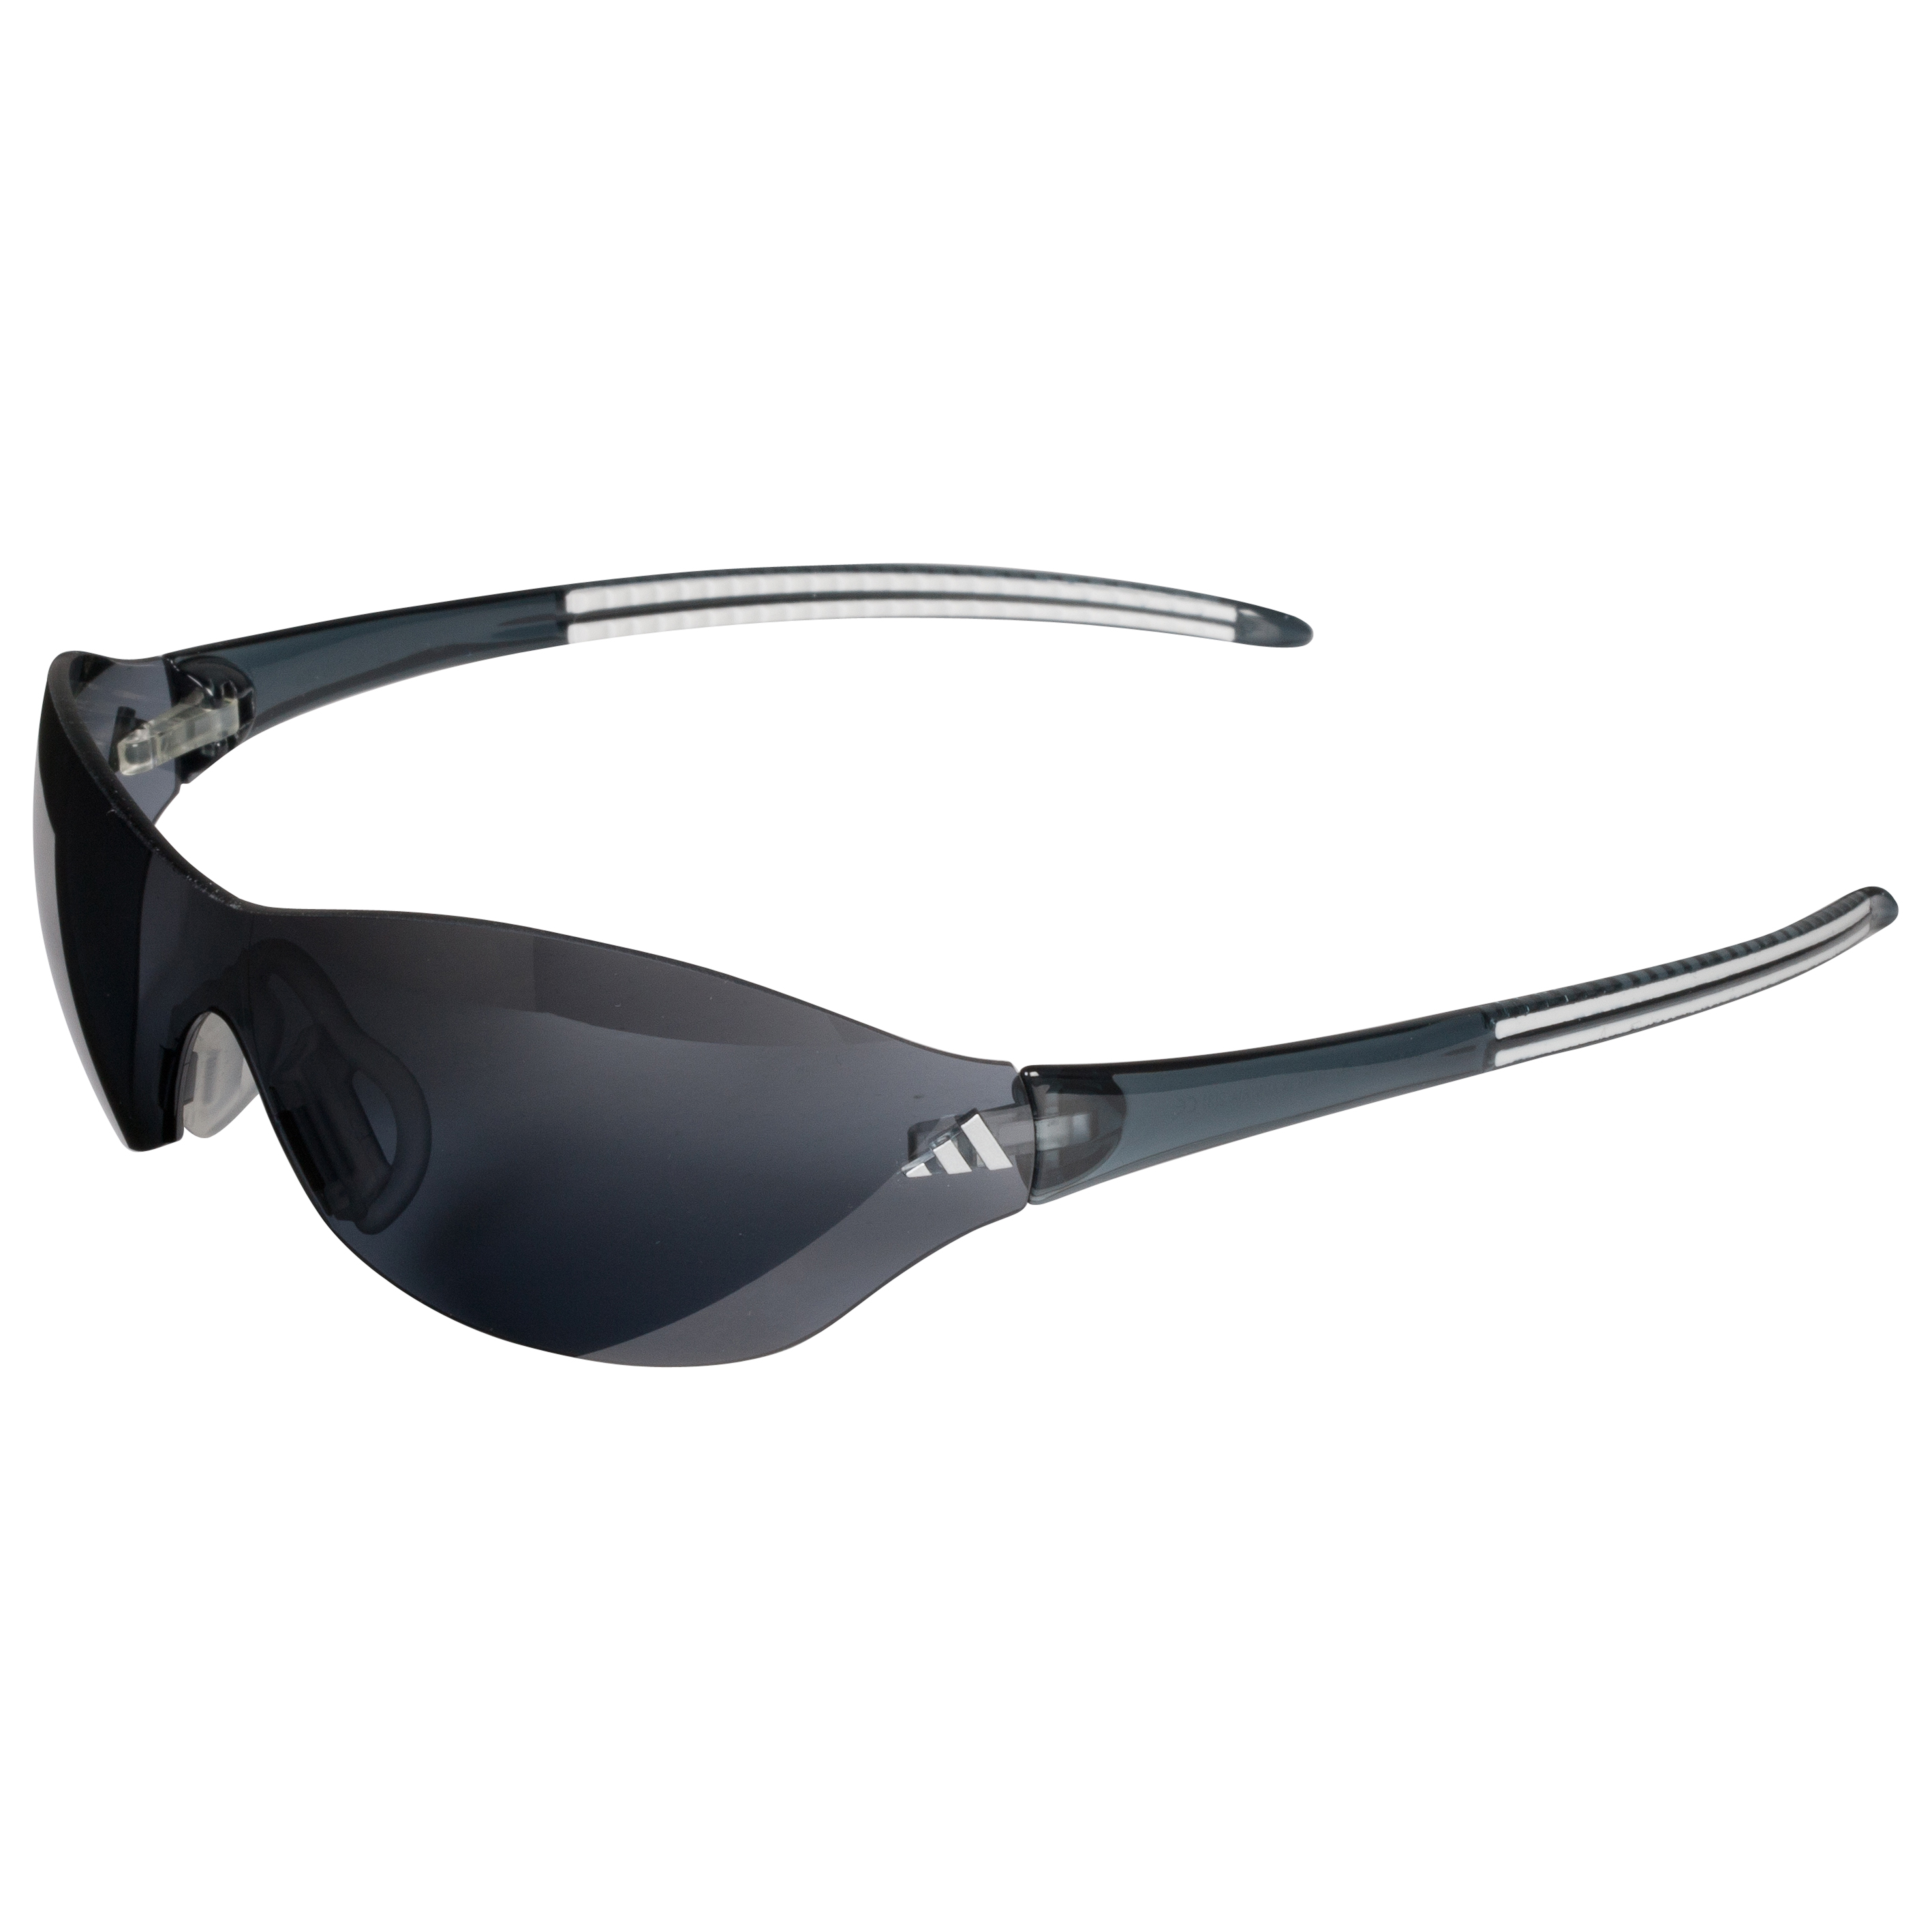 Adidas The Shield Sunglasses - Grey